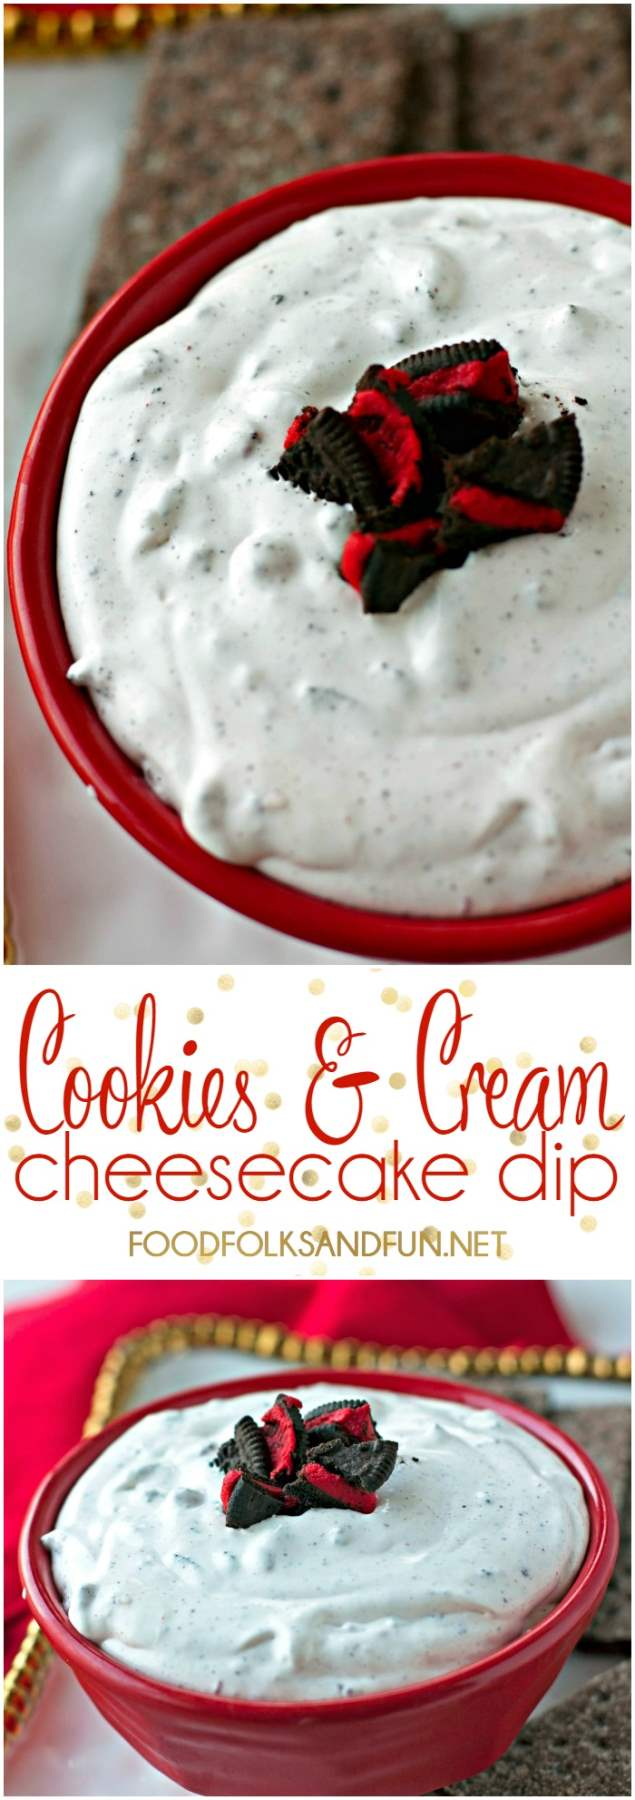 This Cookies and Cream Cheesecake Dip is a fun addition to your holiday get-togethers. Plus you can make it in just 5 MINUTES!